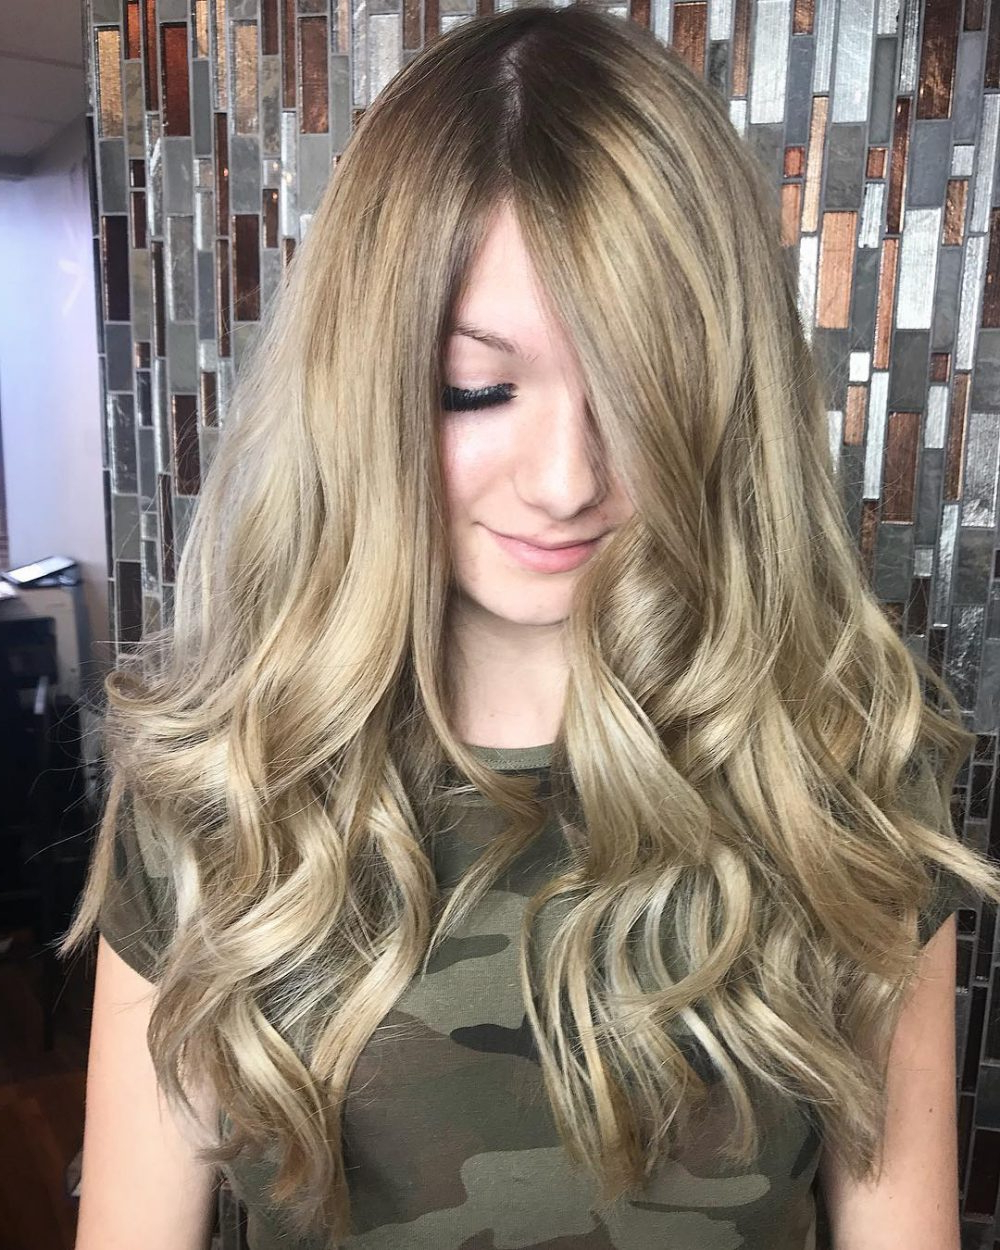 24 Long Wavy Hair Ideas That Are Freaking Hot In 2019 Intended For Well Liked Long Waves Hairstyles (Gallery 4 of 20)